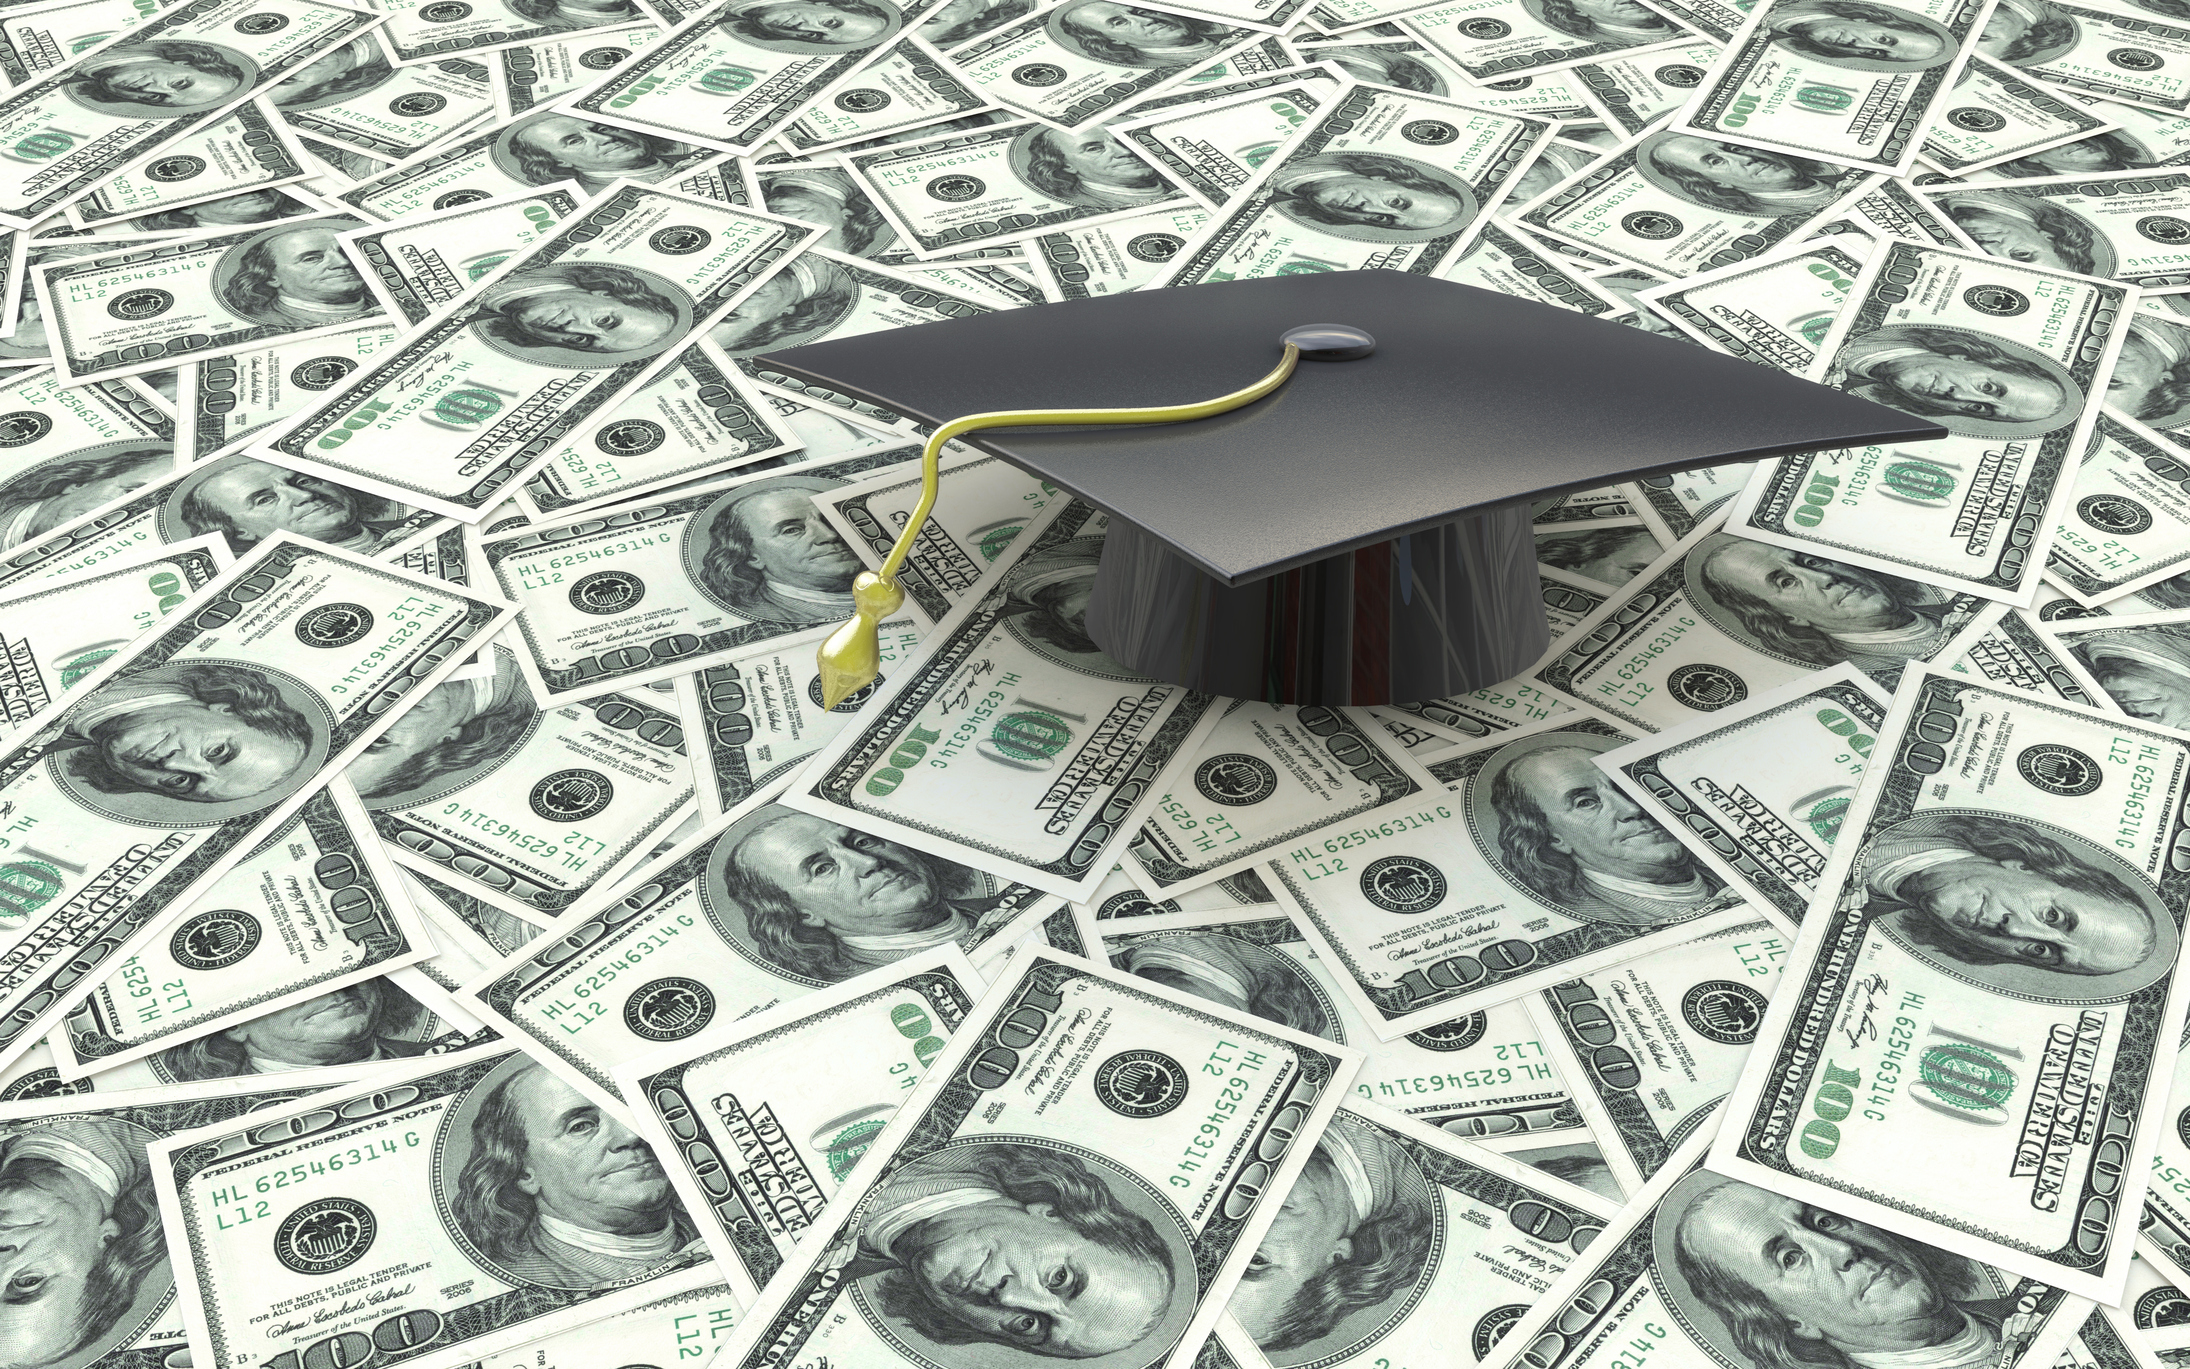 Graduation cap on top of a pile of money